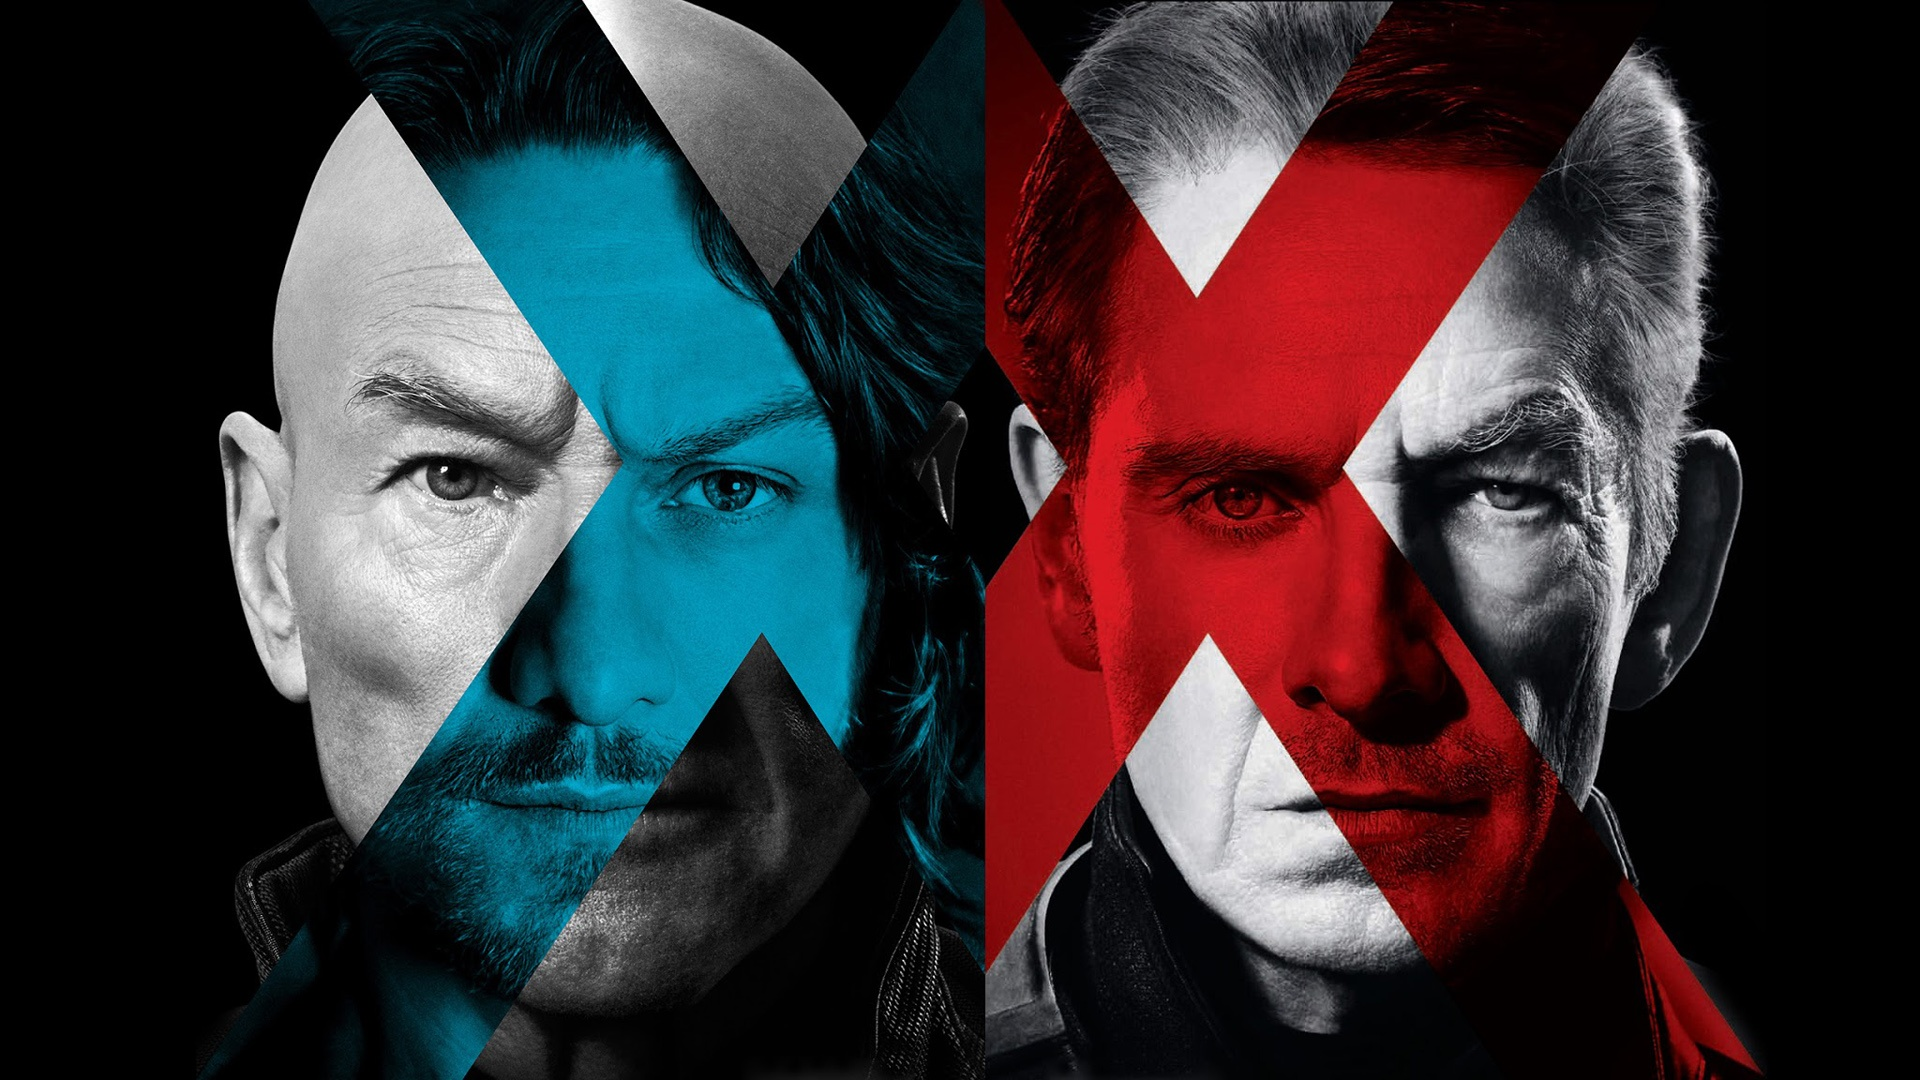 Wallpaper X Men Days Of Future Past 1920x1080 Full Hd 2k Picture